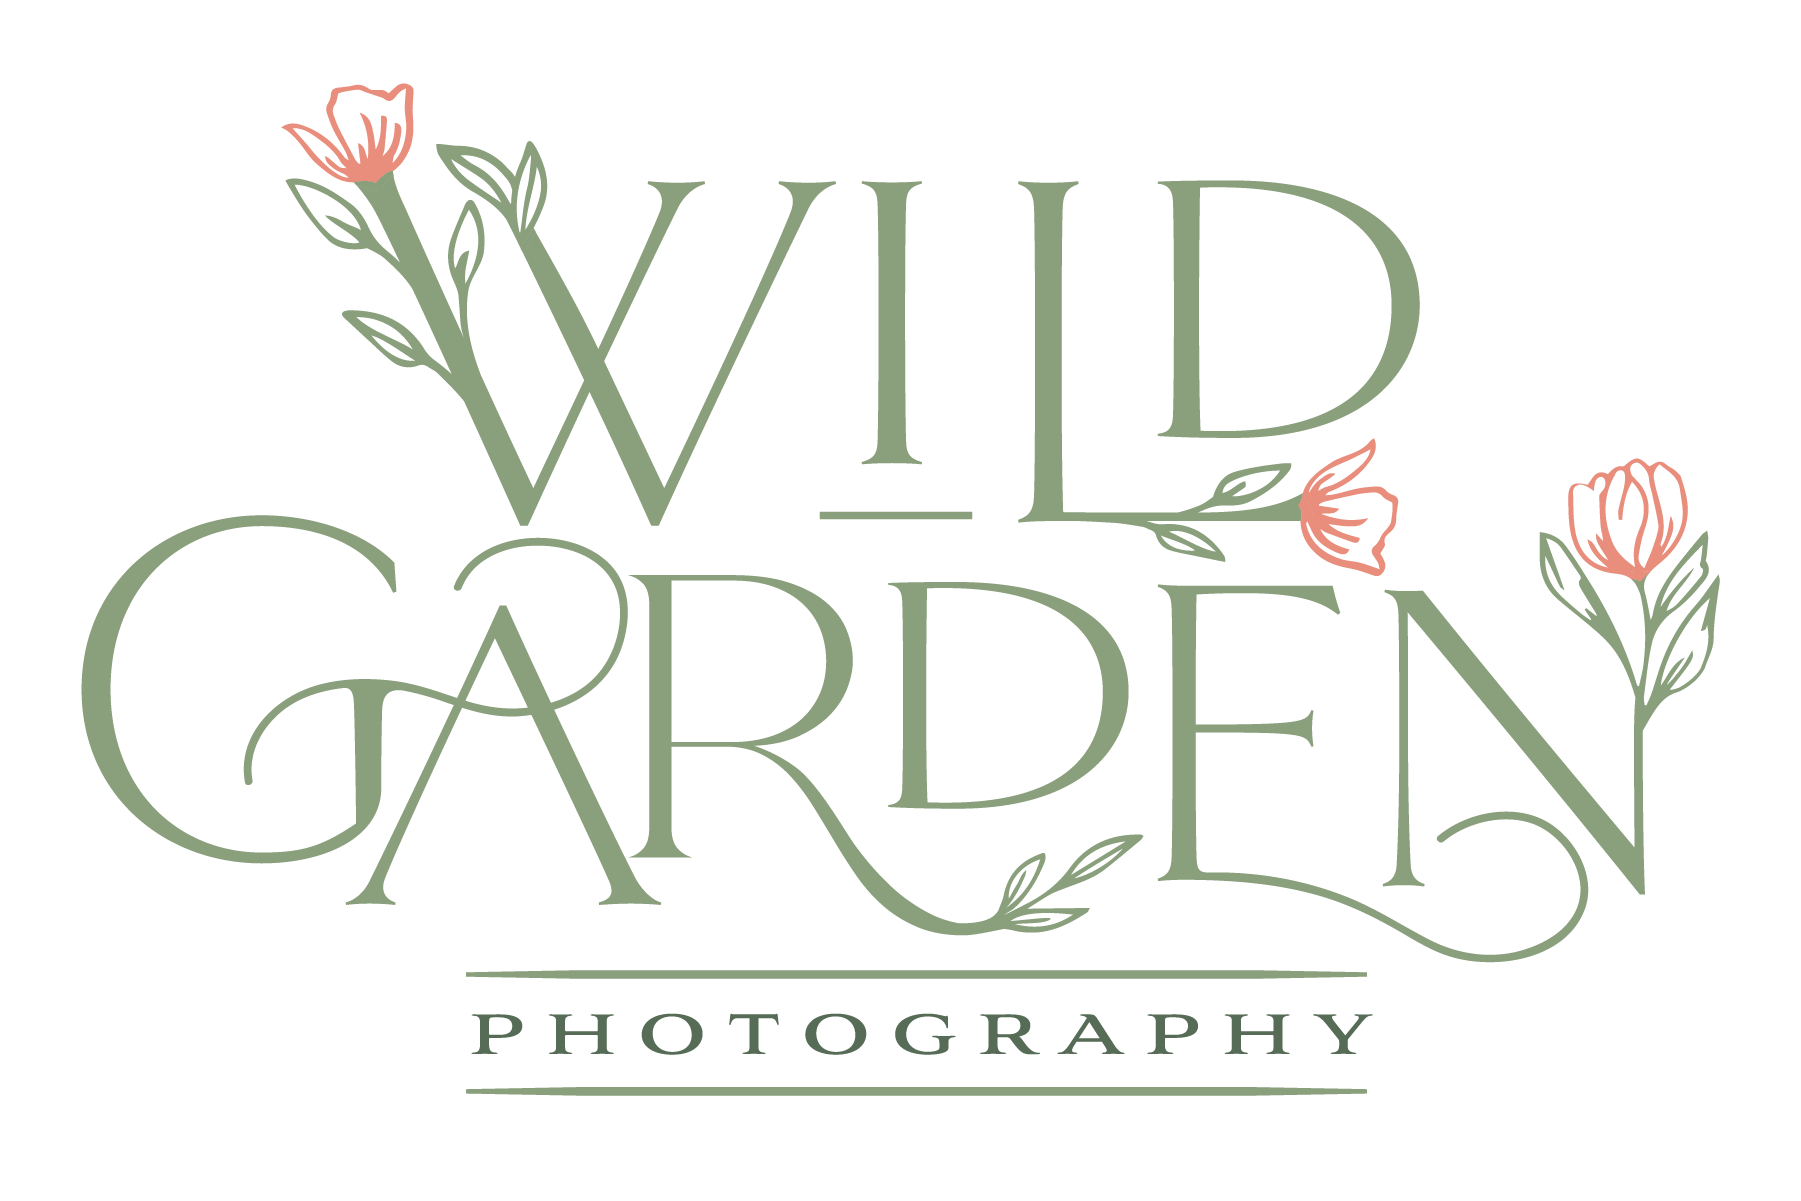 Wild Garden Photography - Houston Photography